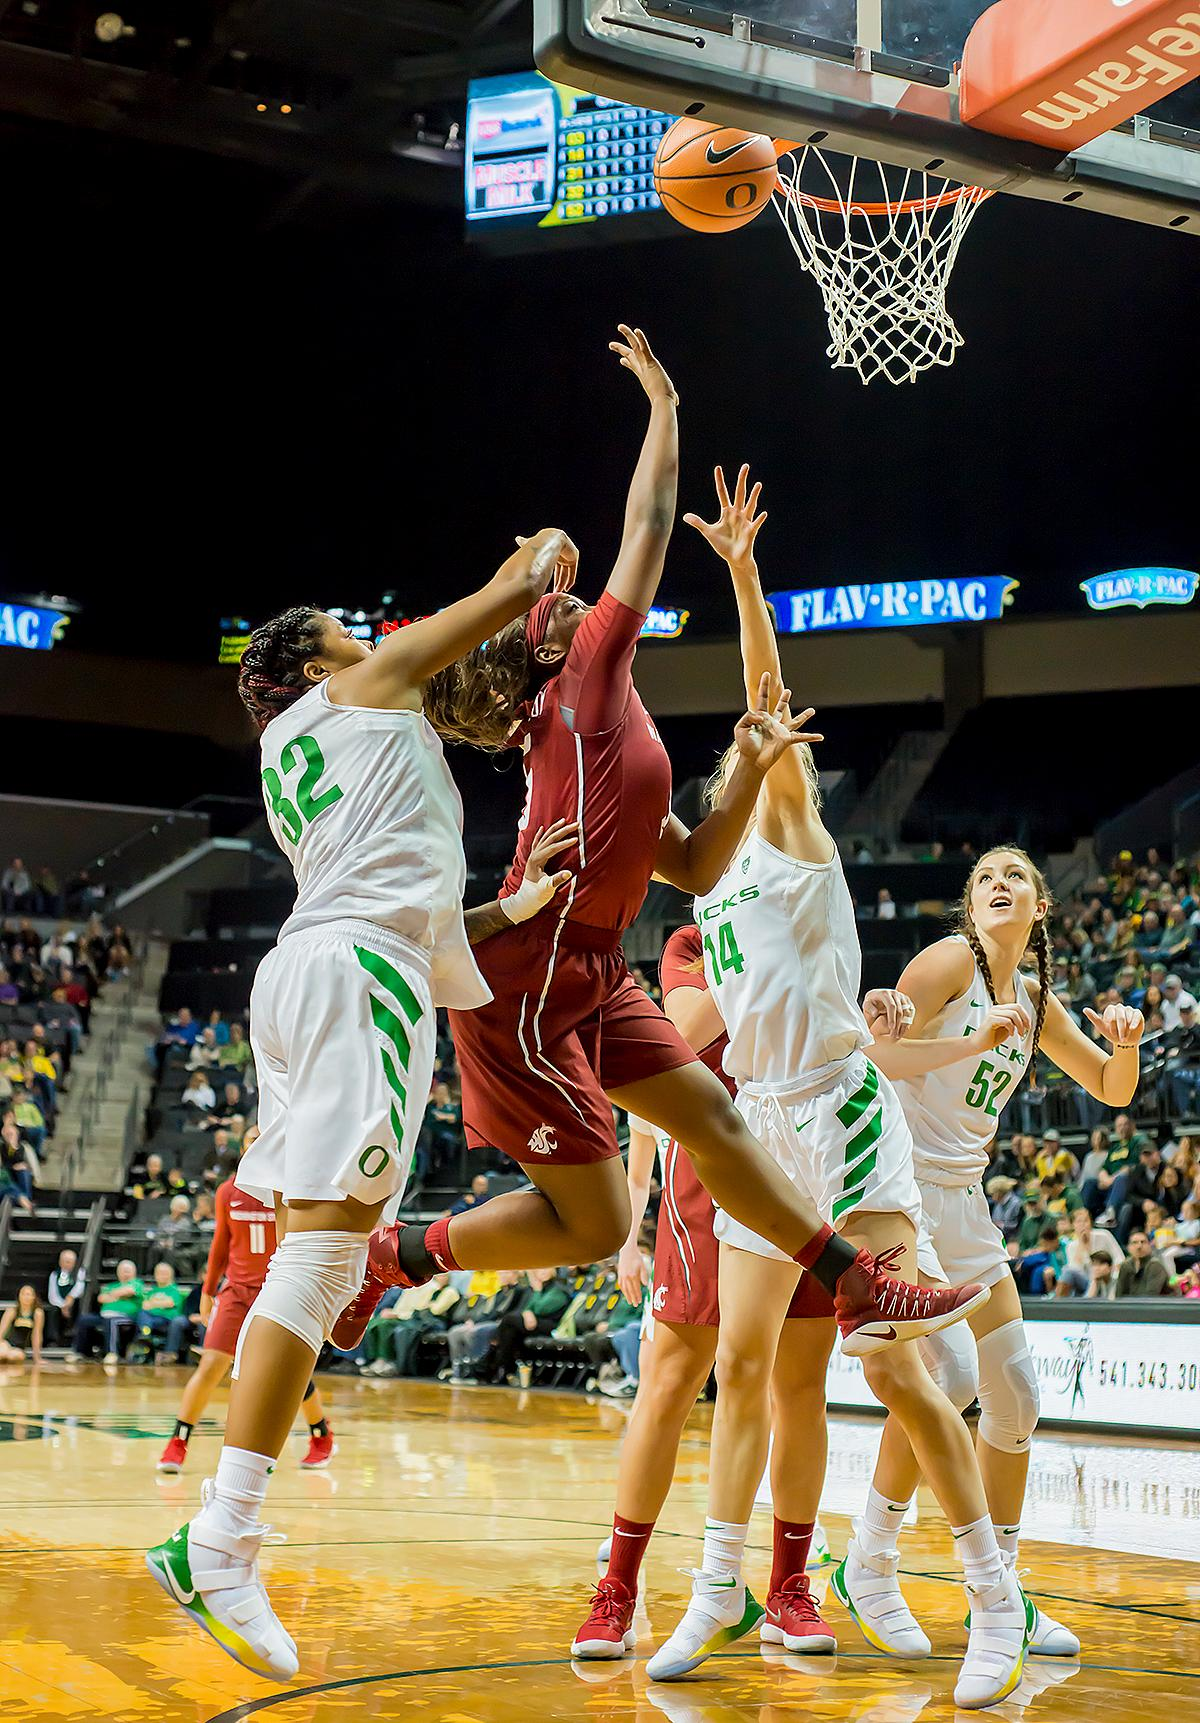 Washington State University Cougars Kayla Washington (#5, red jersey) fights for a rebound against Oregon Ducks Oti Gildon (#32), Lydia Giomi (#14) and Sierra Campisano (#52). In their first conference basketball game of the season, the Oregon Women Ducks defeated the Washington State Cougars 89-56 in Matt Knight Arena Saturday afternoon. Oregon's Ruthy Hebard ran up 25 points with 10 rebounds. Sabrina Ionescu shot 25 points with five three-pointers and three rebounds. Lexi Bando added 18 points, with four three-pointers and pulled down three rebounds. Satou Sabally ended the game with 14 points with one three-pointer and two rebounds. The Ducks are now 12-2 overall with 1-0 in conference and the Cougars stand at 7-6 overall and 0-1 in conference play. The Oregon Women Ducks next play the University of Washington Huskies at 1:00 pm on Sunday. Photo by Karly DeWees, Oregon News Lab